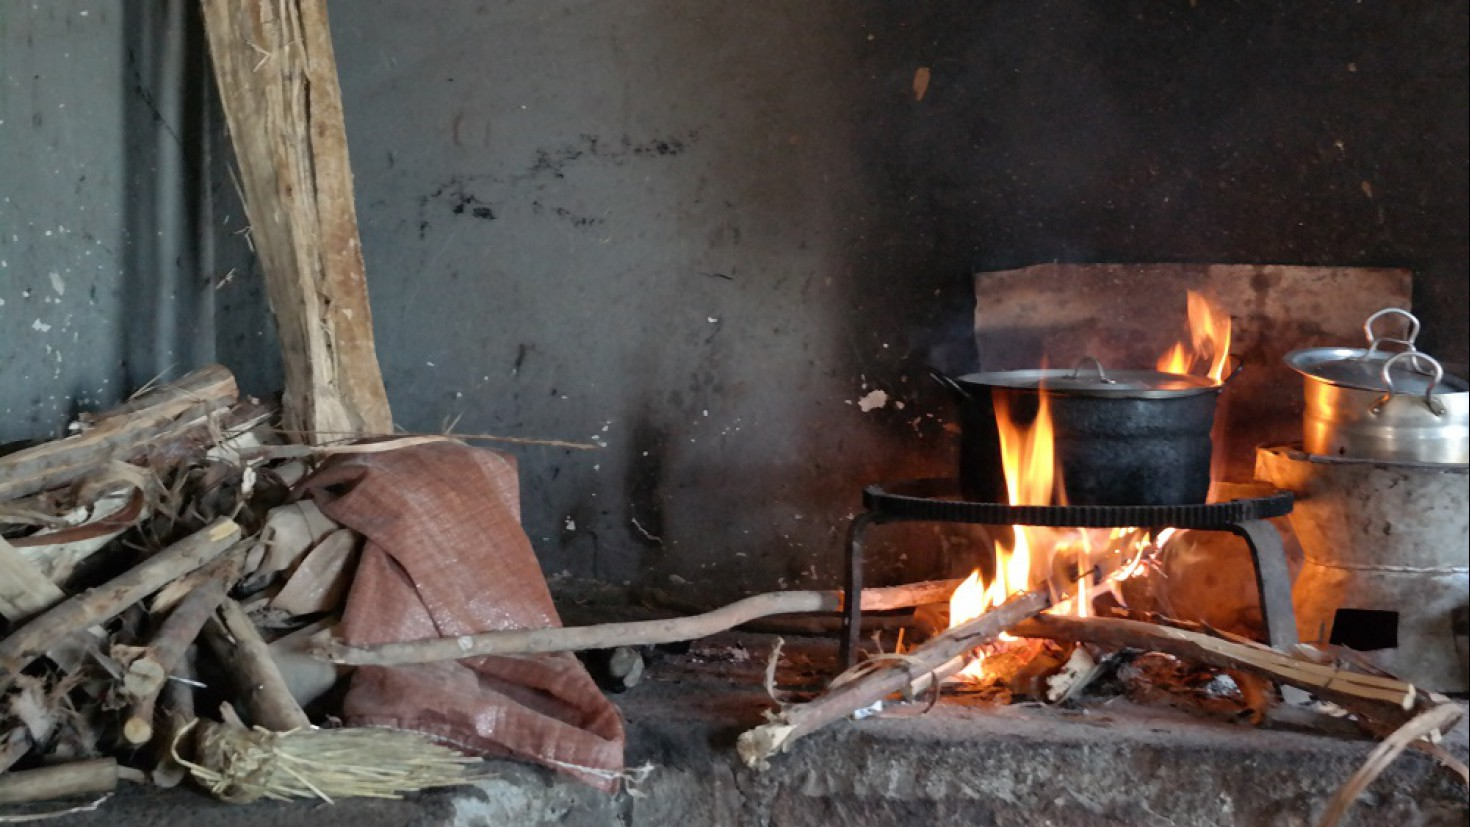 Traditional cooking wood in ethiopia. photo: kristin aunan